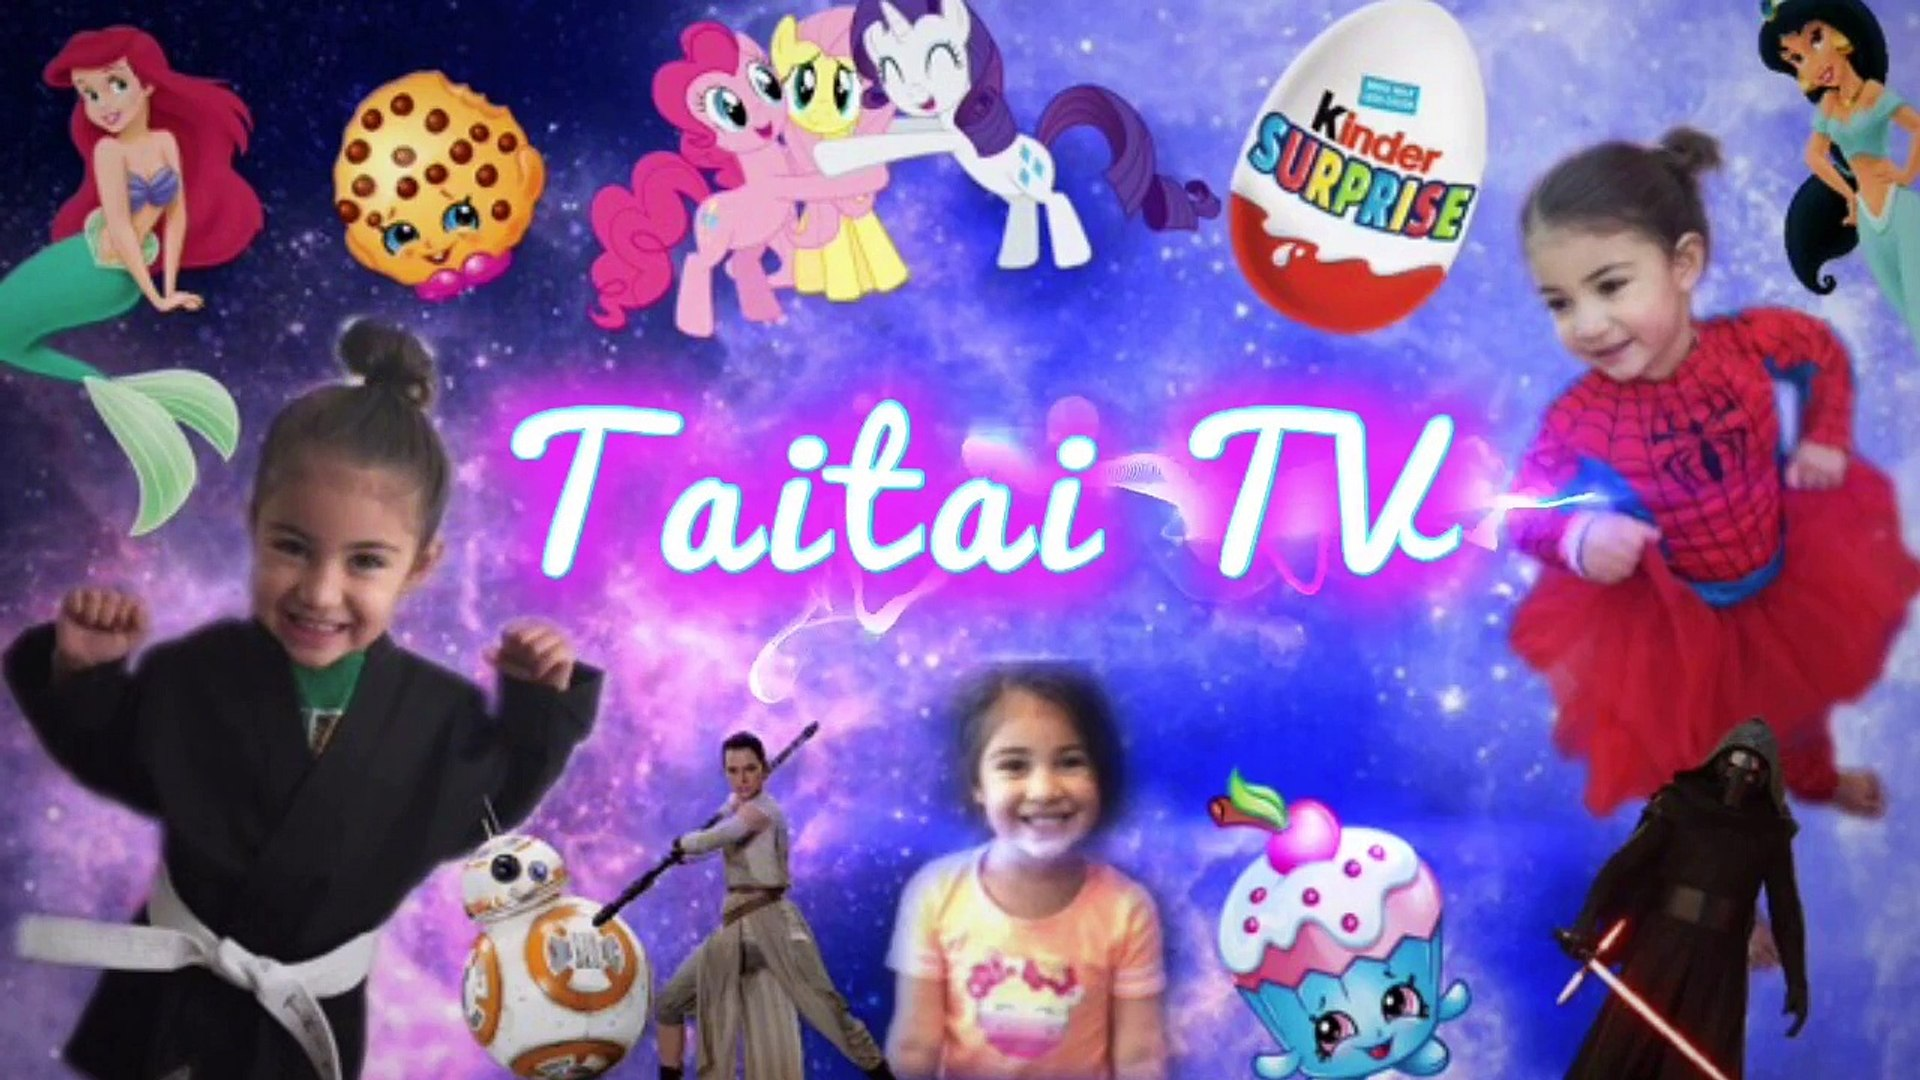 Welcome To Taitai Tv! Kid Fun Videos! A Kids Channel! Kid YouTuber!